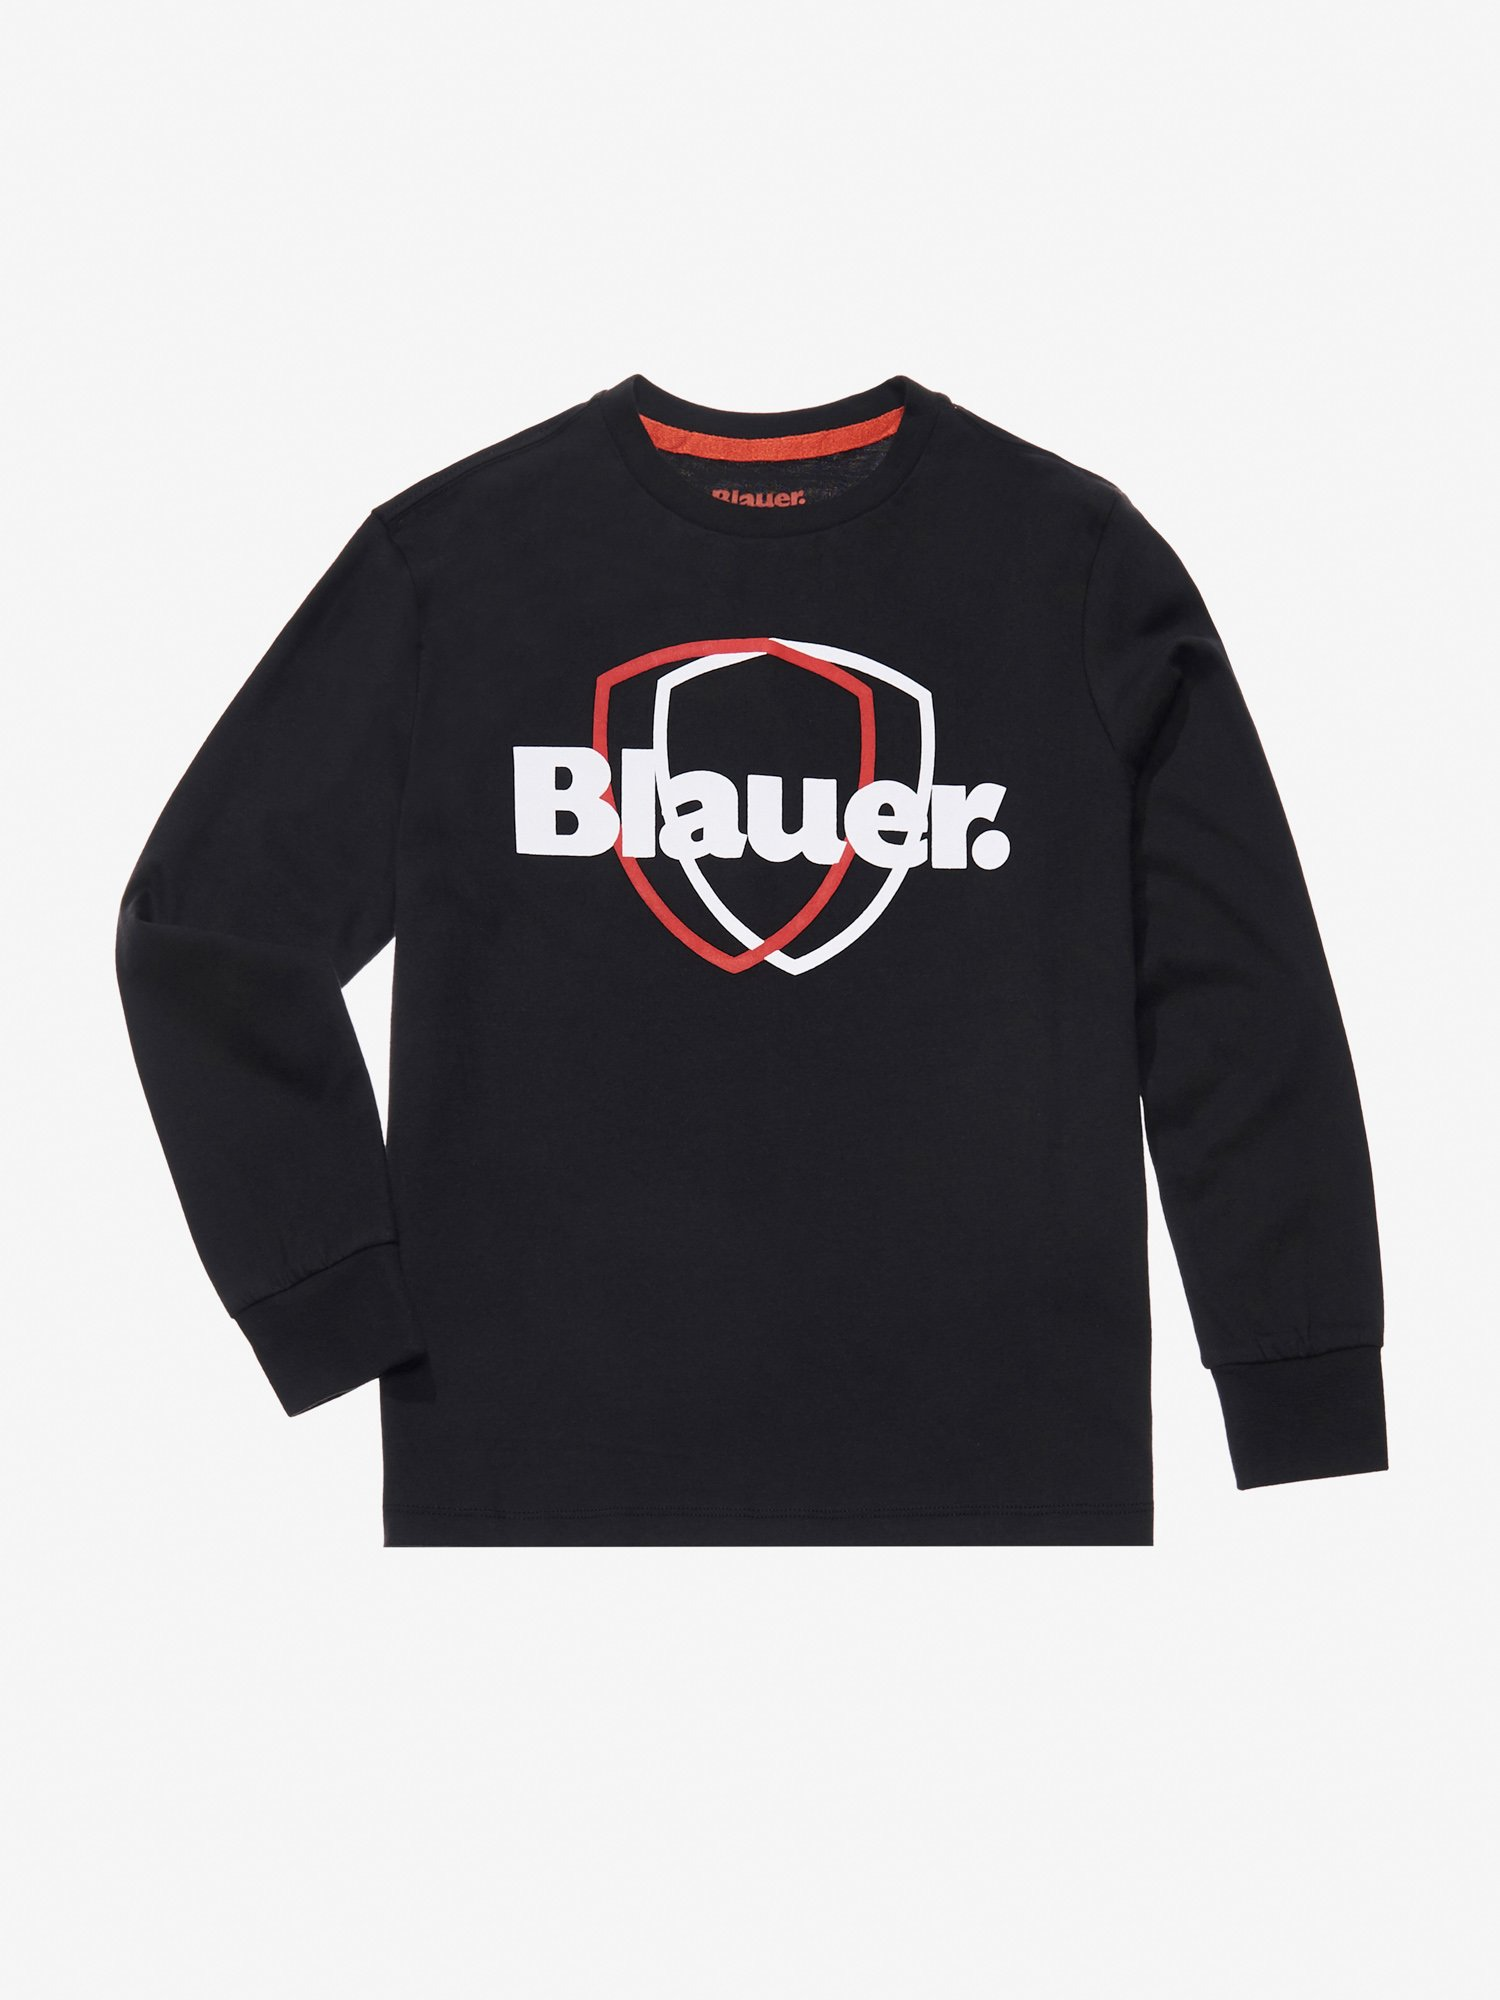 DOUBLE SHIELD COTTON JERSEY SWEATER - Blauer